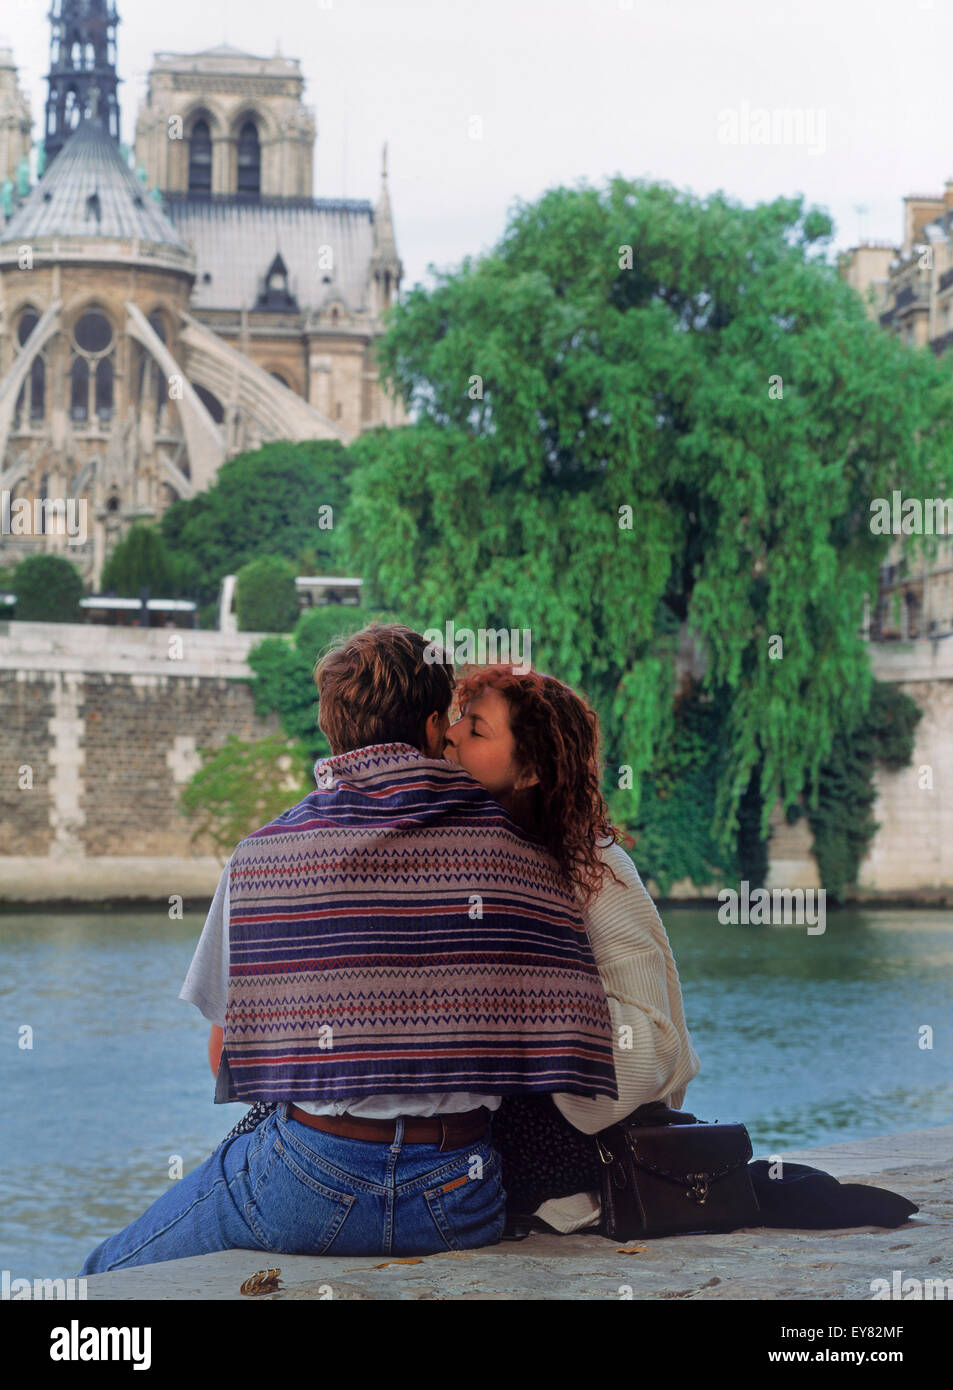 Couple kissing at Ile St Louis on River Seine across from Notre Dame in Paris - Stock Image